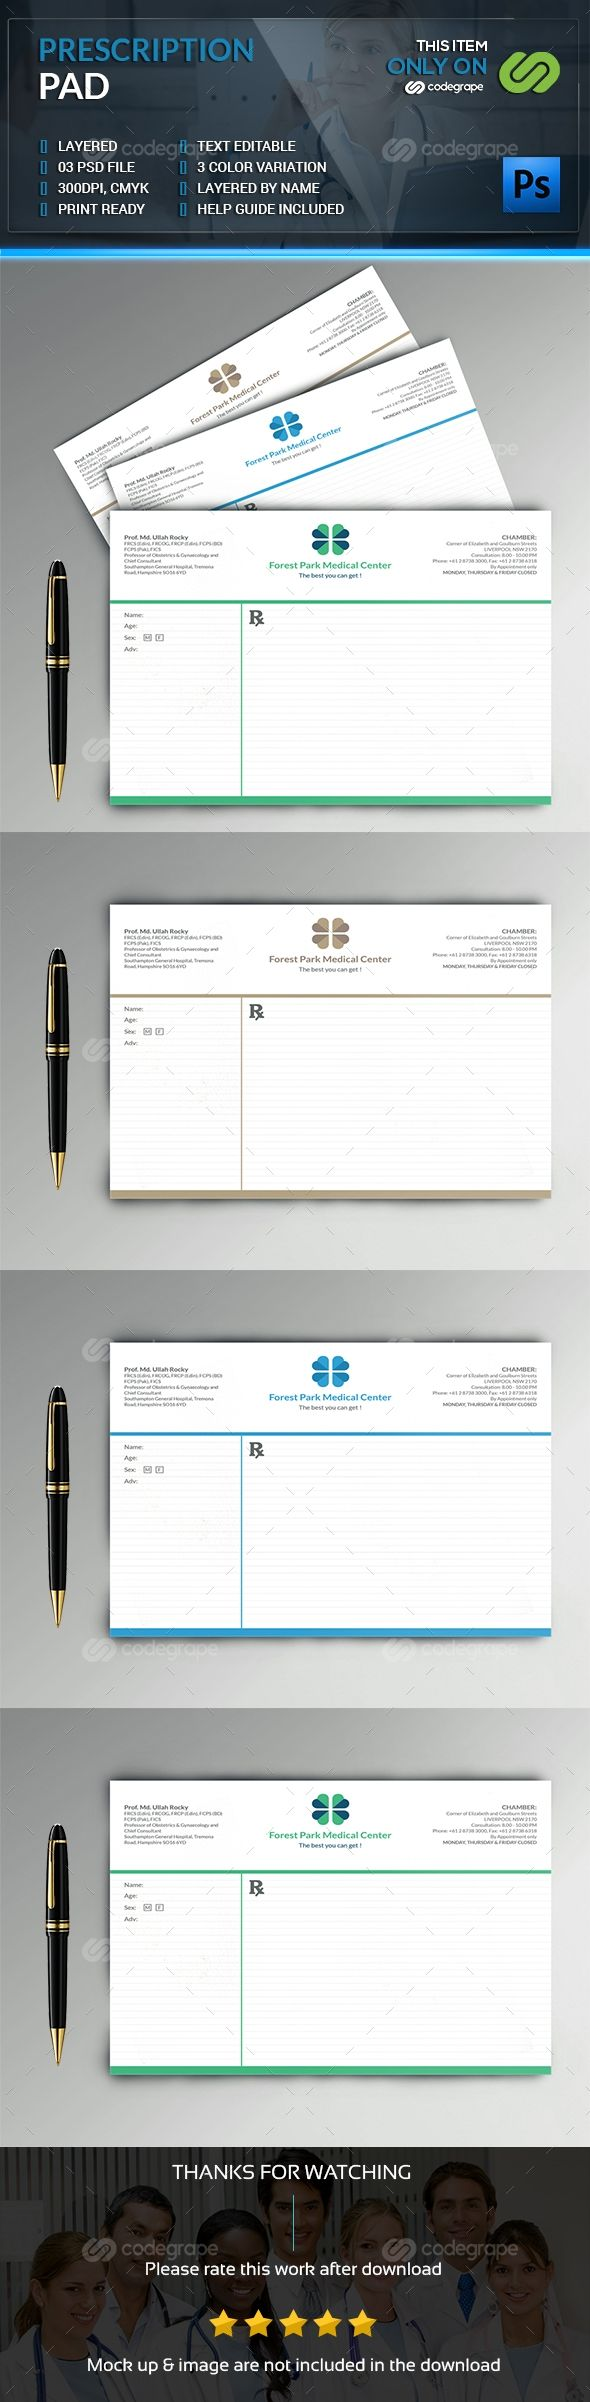 Prescription Pad  Brand Identity Form Design And Logos